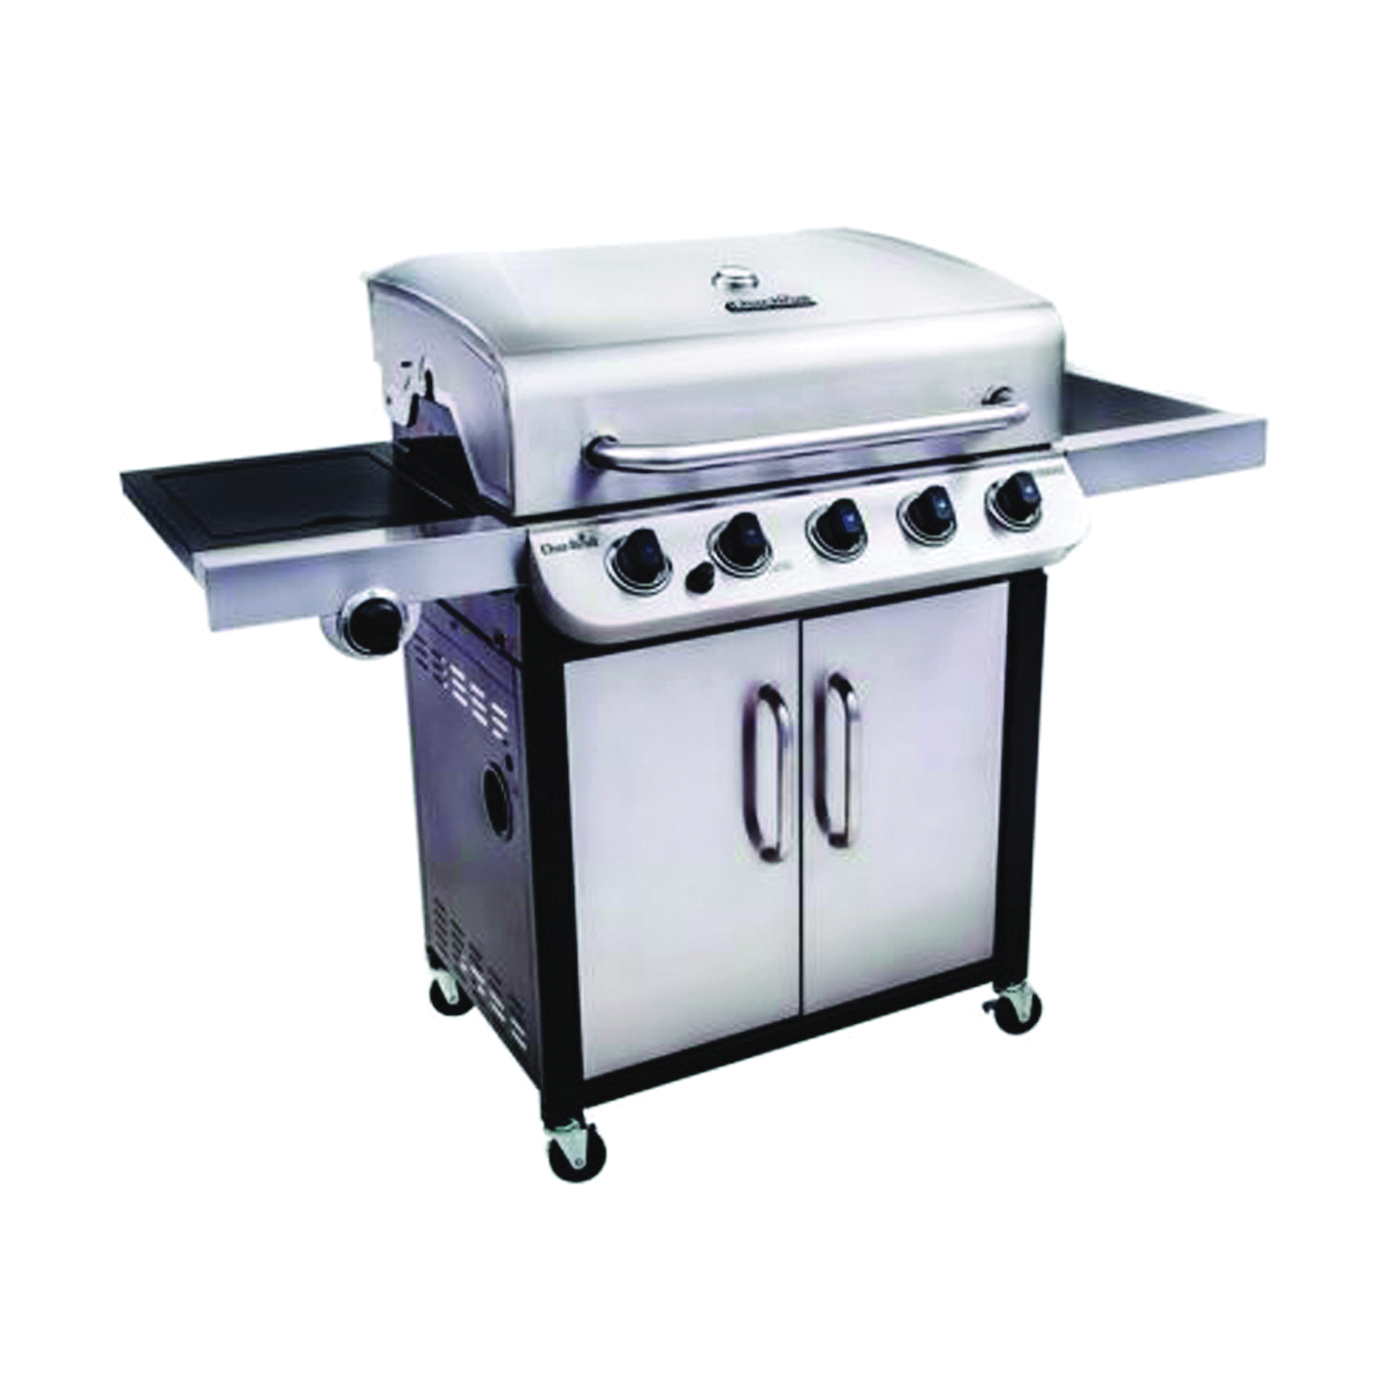 Picture of Char-Broil Performance Series 463275517 Gas Grill, 45000 Btu BTU, Liquid Propane, 5 -Burner, Stainless Steel Body